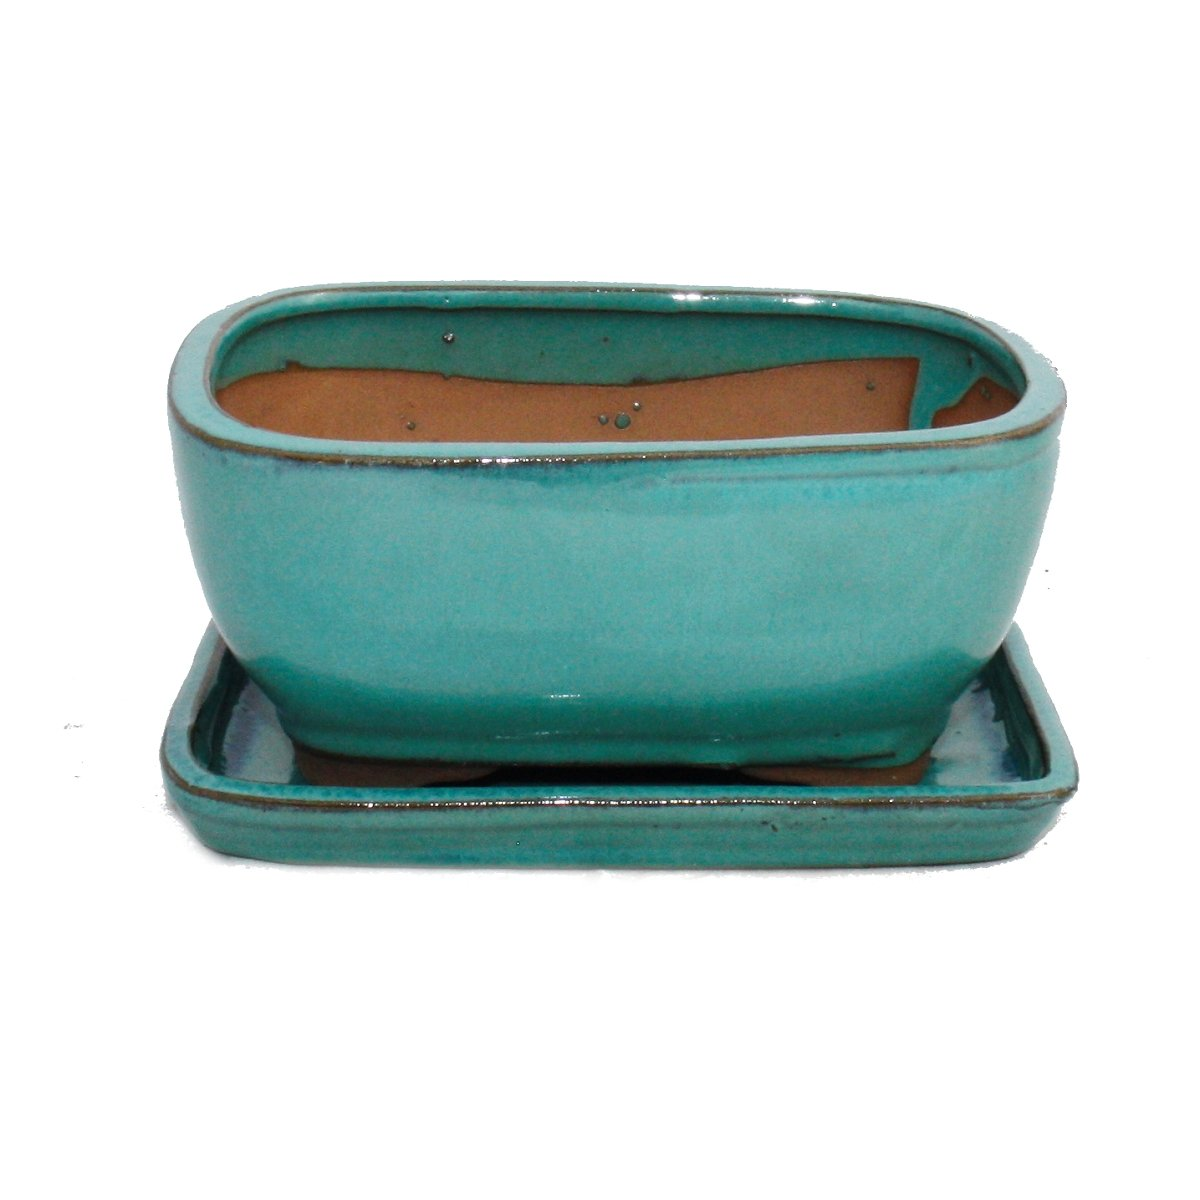 Bonsai cup and saucer Gr. 2 - turquoise - oval - model G92 - L 15,5cm - B 12,5cm - H 7cm exotenherz